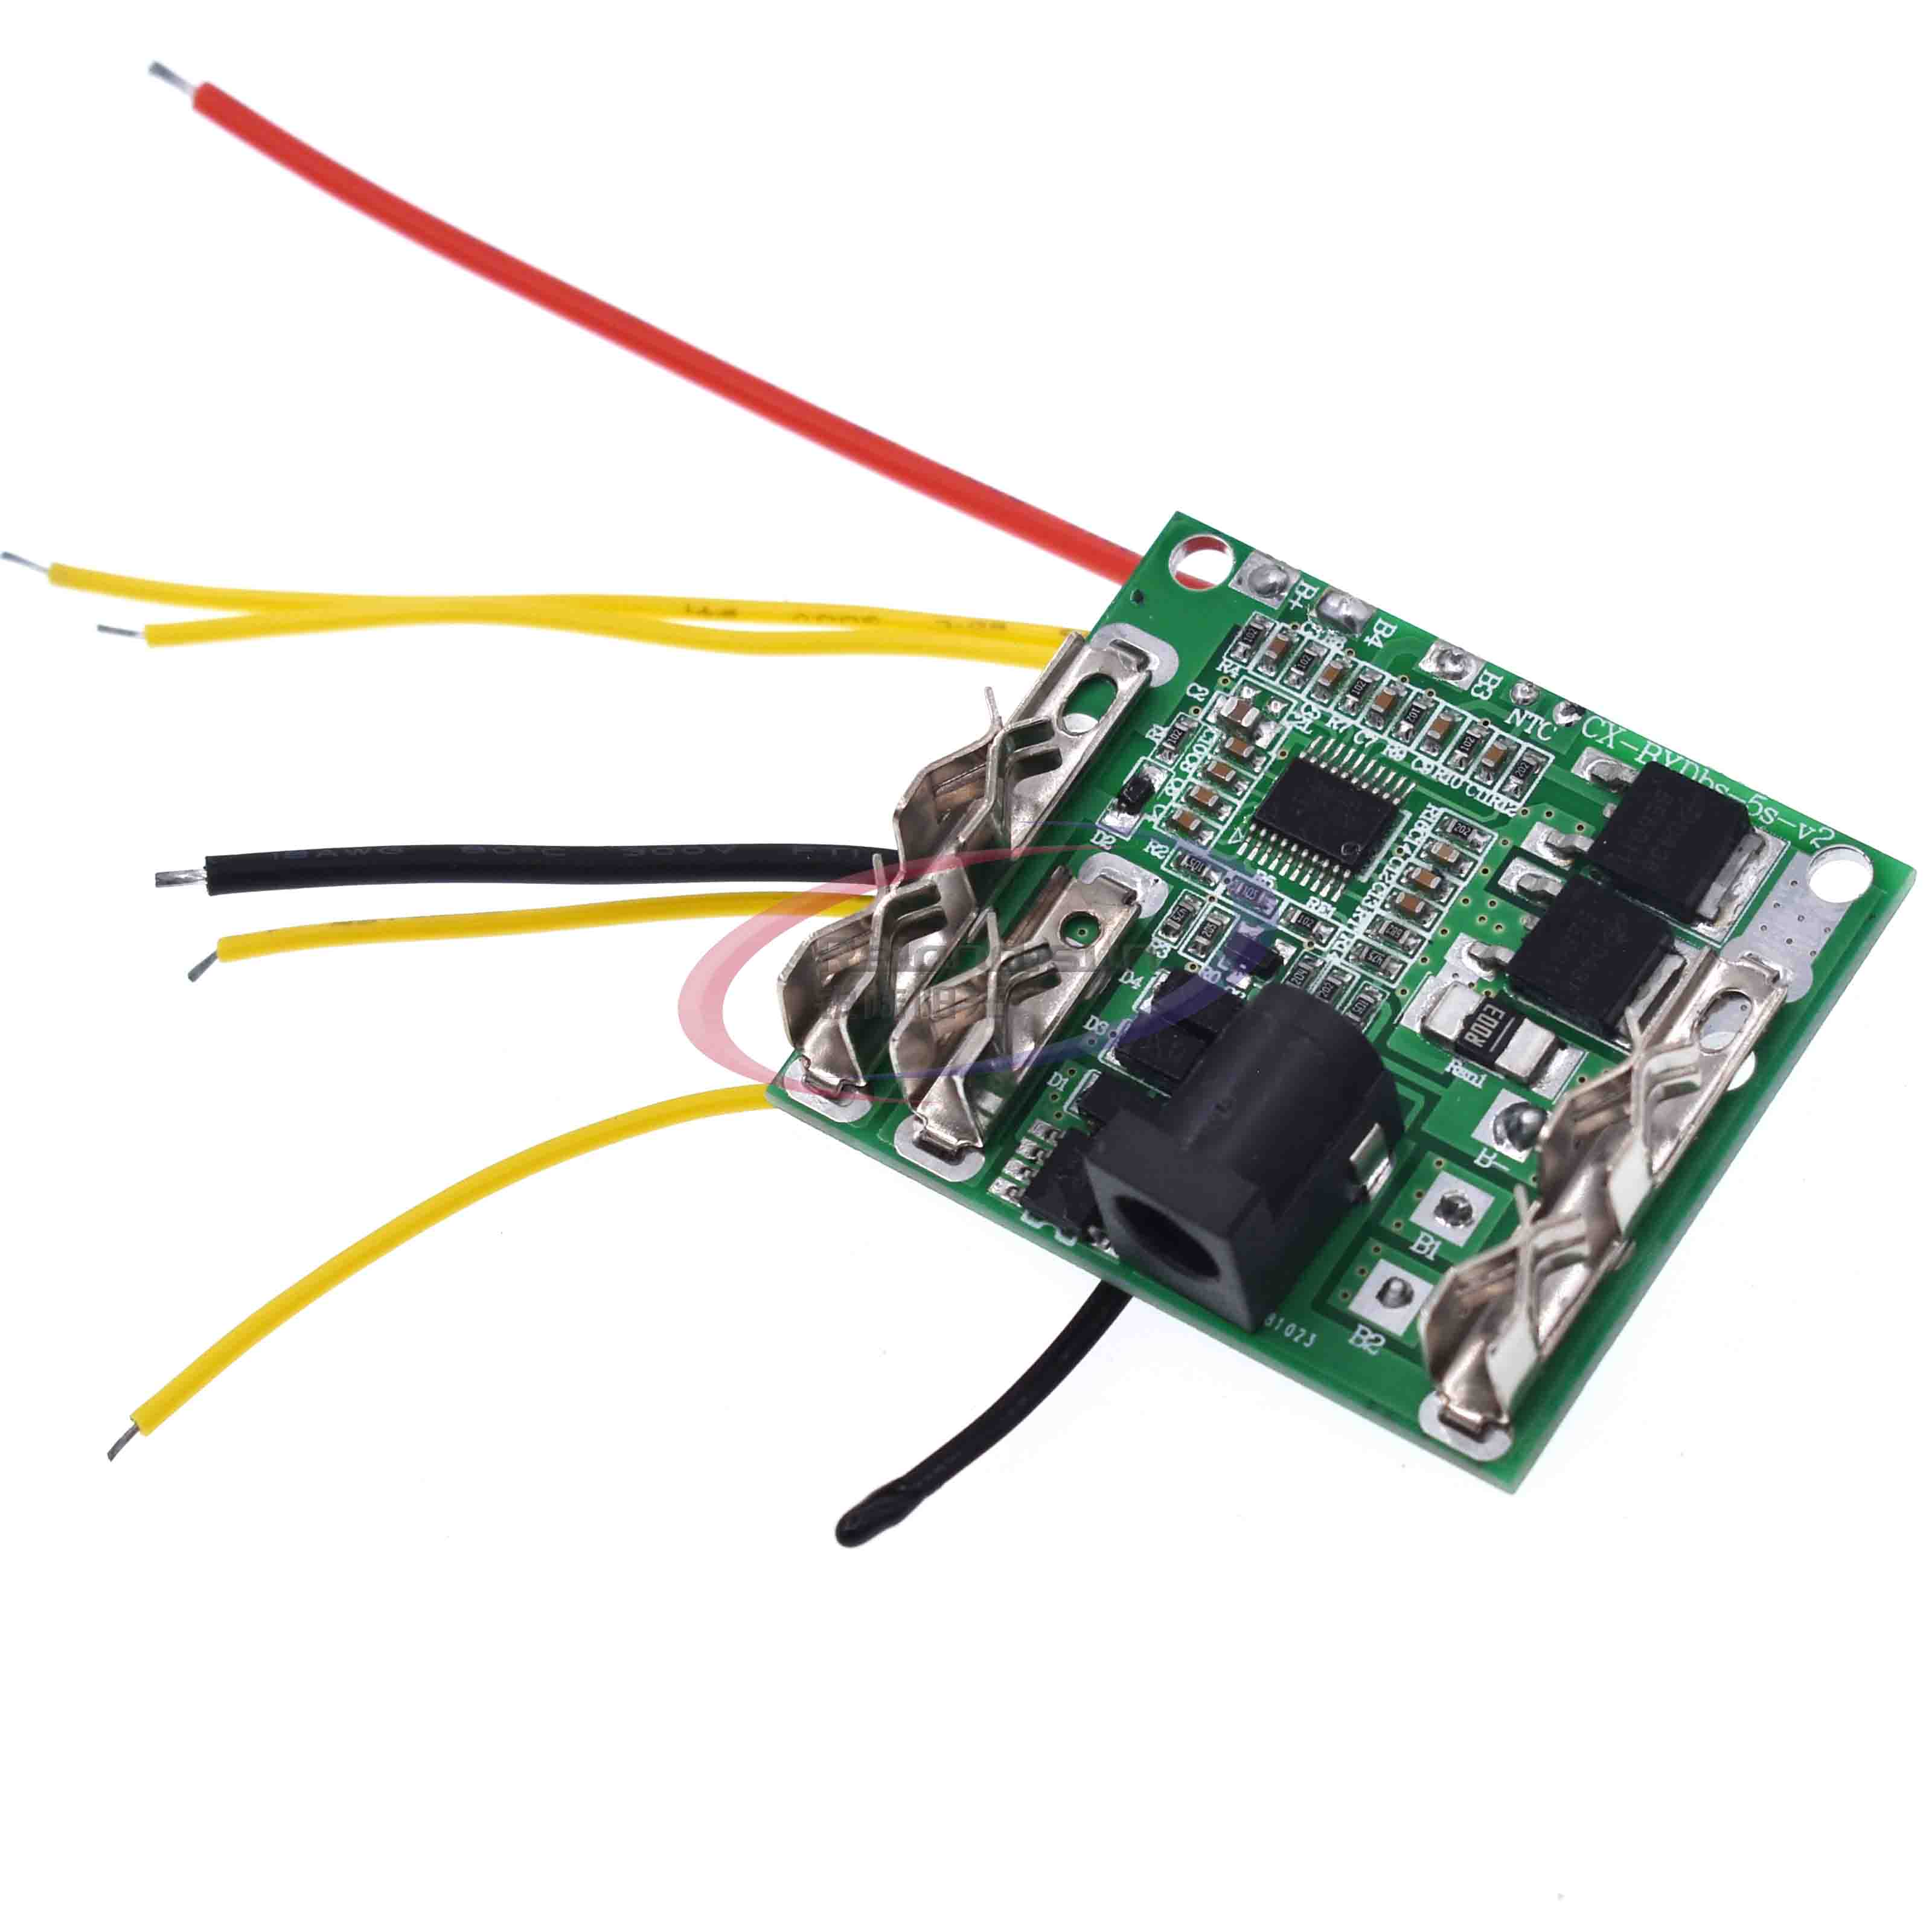 Battery Charging Protection Board 5S 18/21V 20A Li-Ion Lithium Battery Pack Protection Circuit Board BMS Module For Power Tools